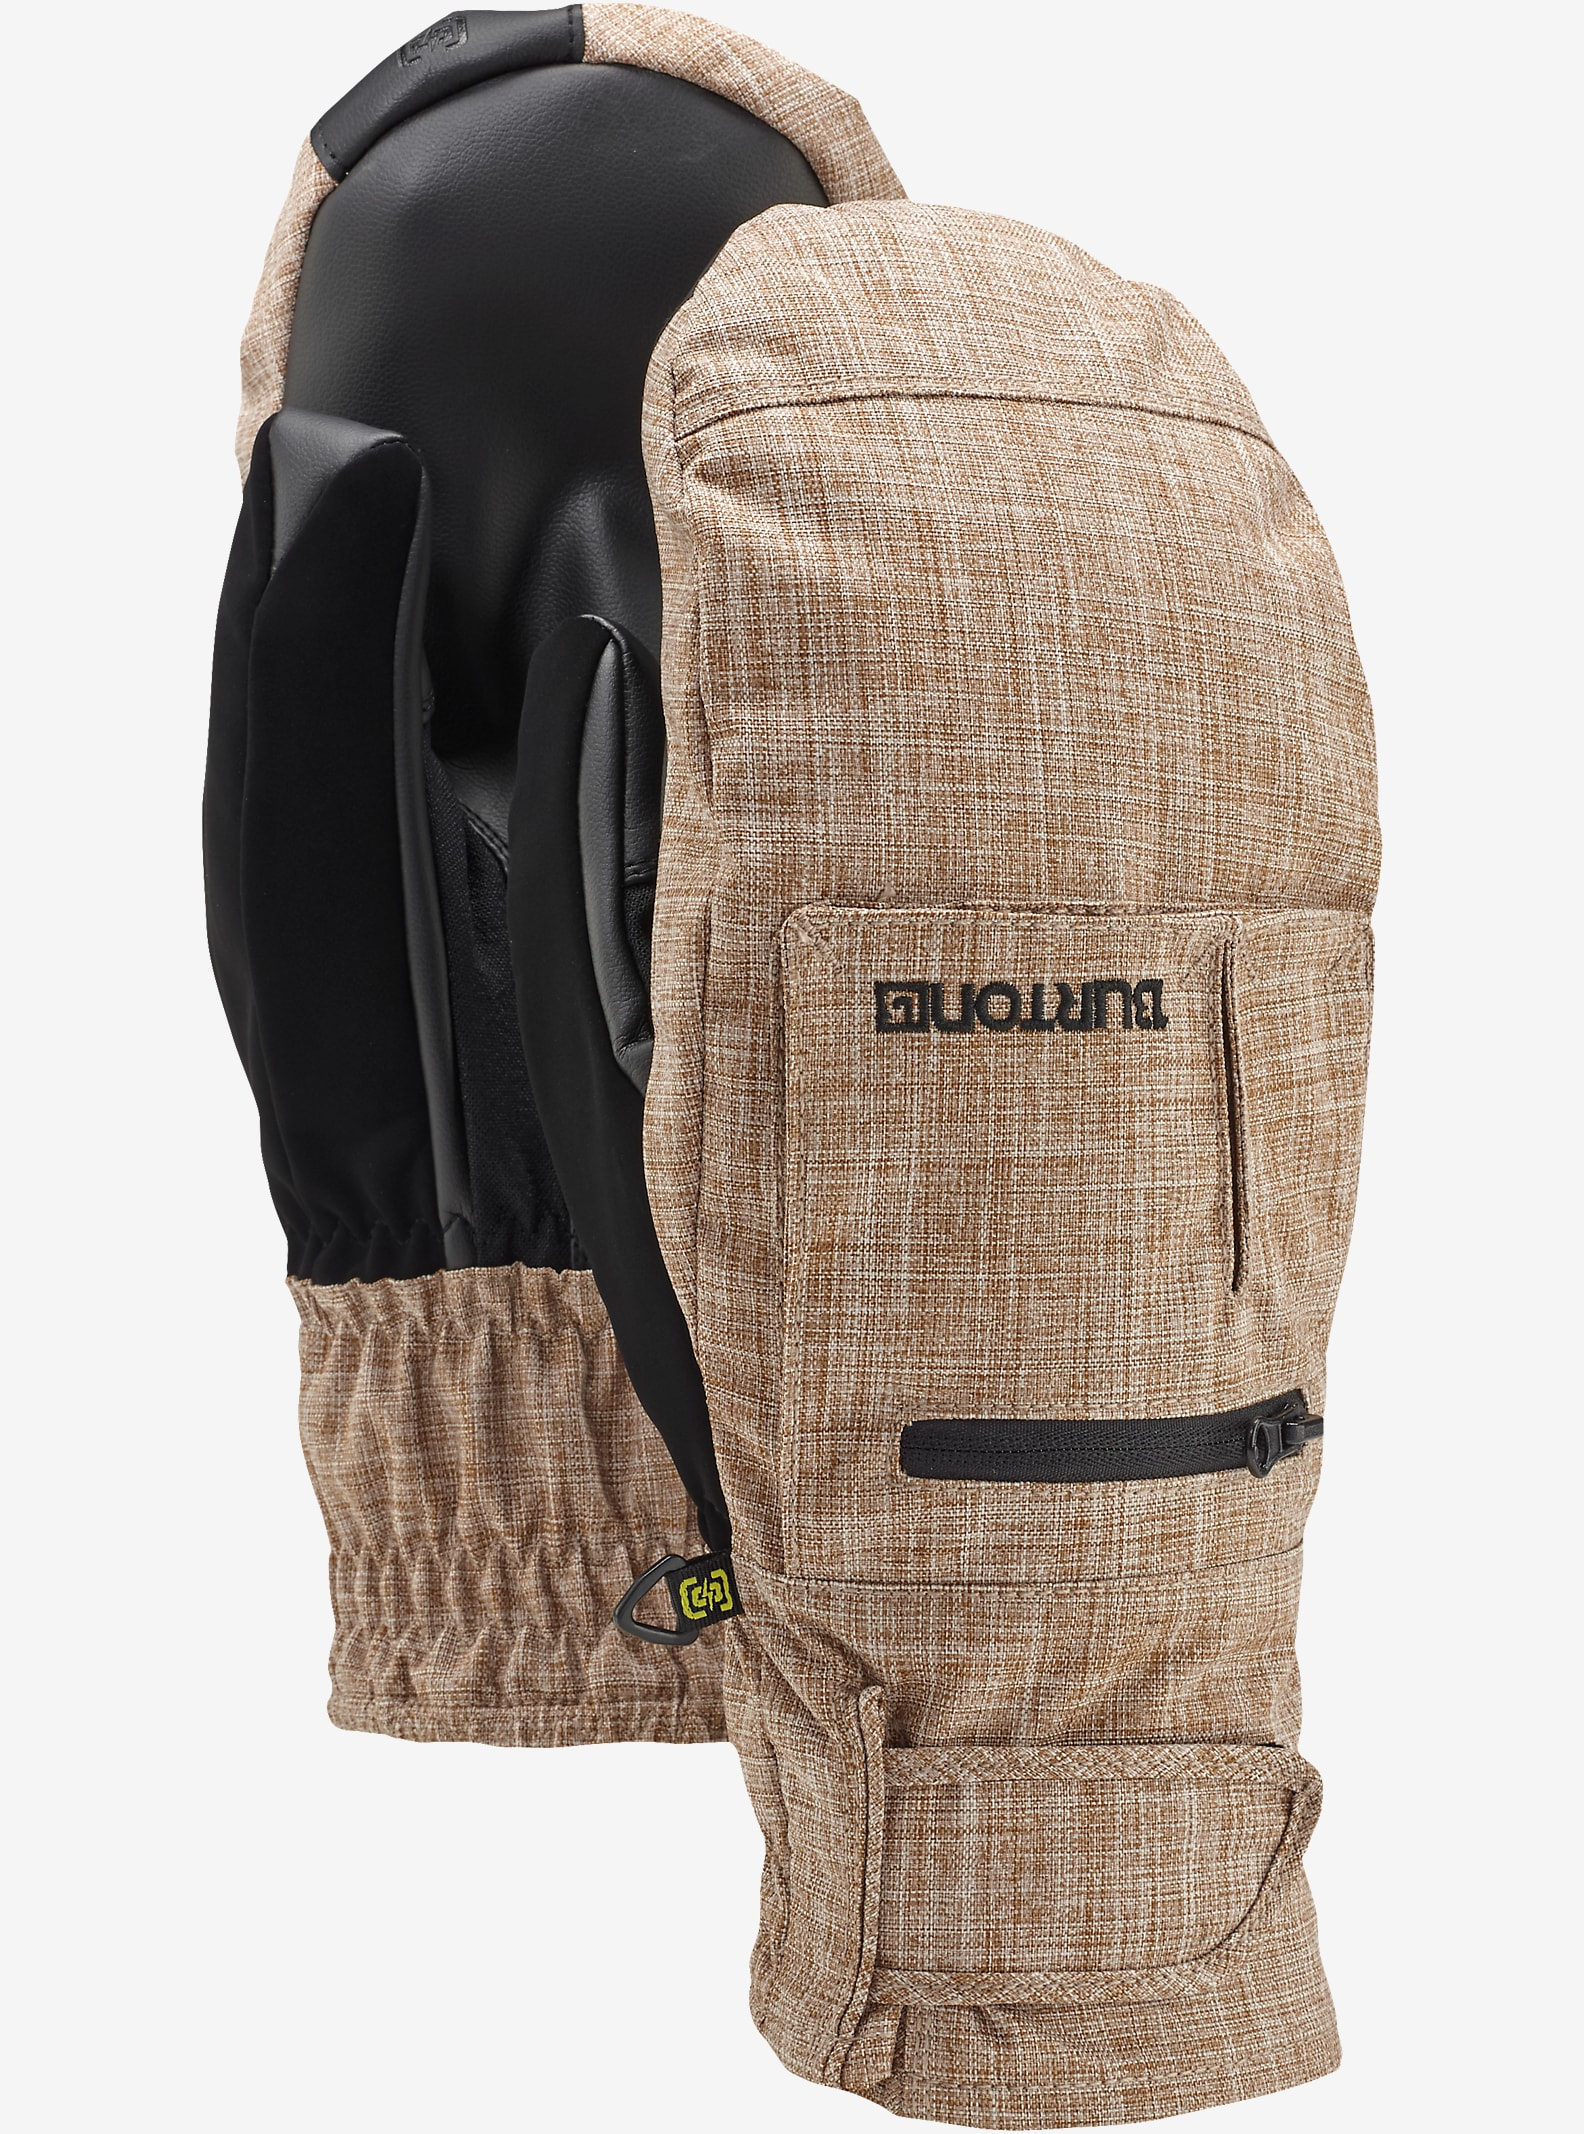 Burton Baker 2-In-1 Under Mitt shown in Beaver Tail Melange